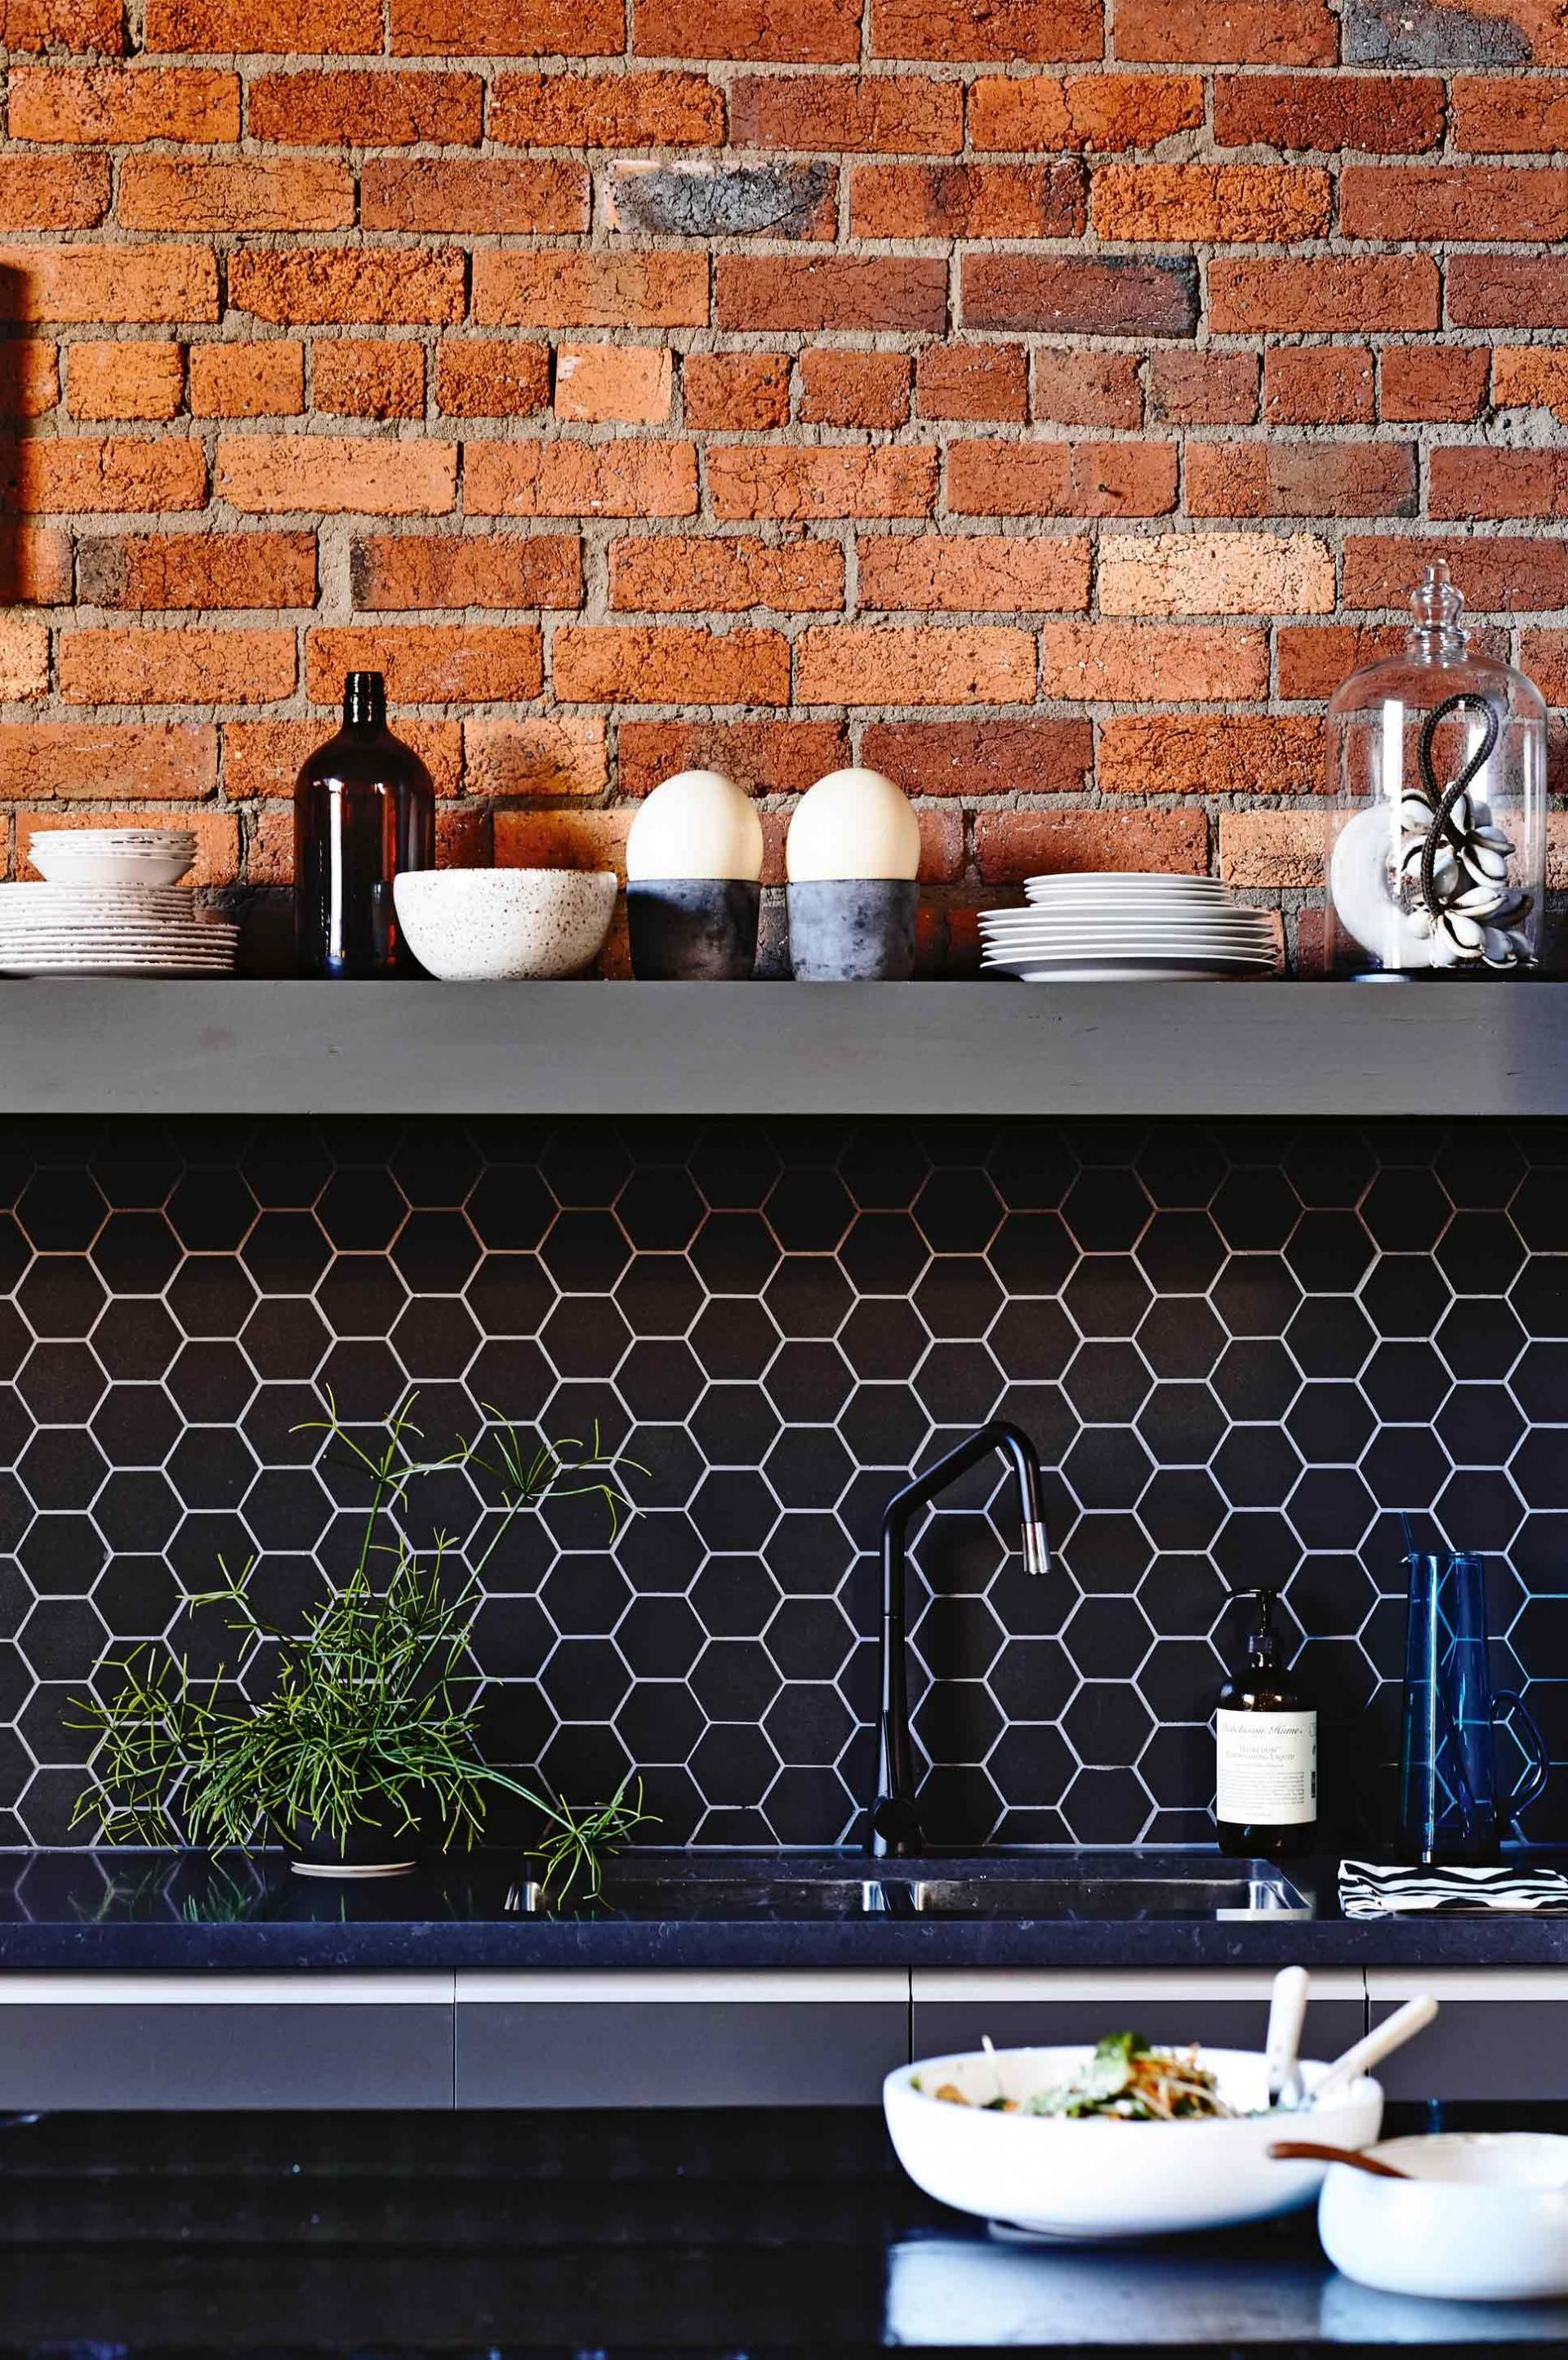 Kitchen Tiles For Splashbacks Kitchen Splashbacks 8 Ideas From Insideoutcomau Styling By